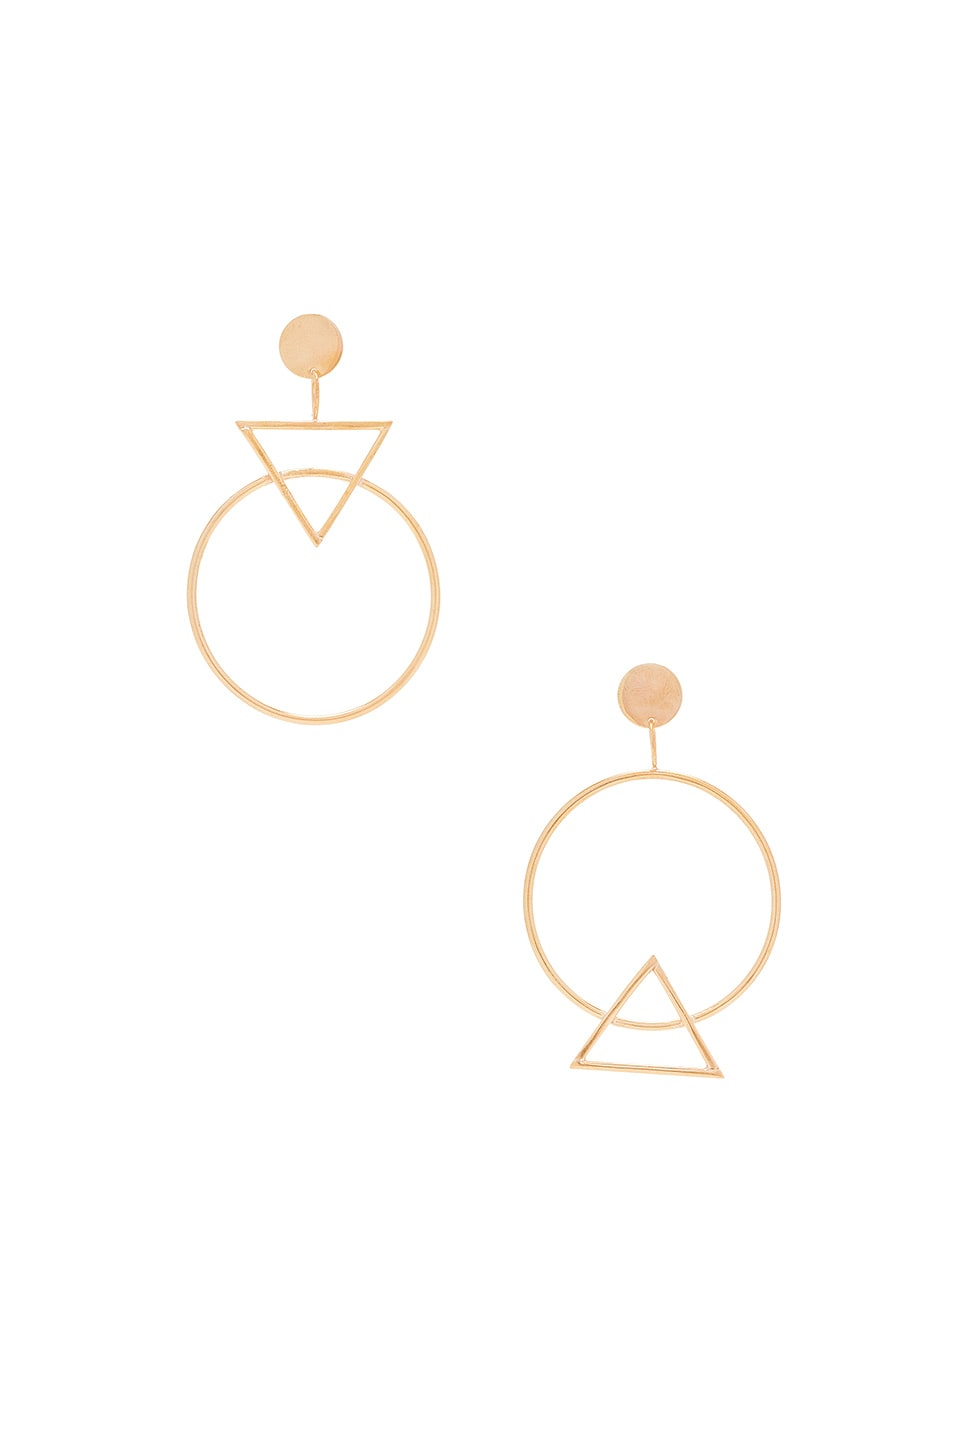 Paradigm Futura Earrings in Gold